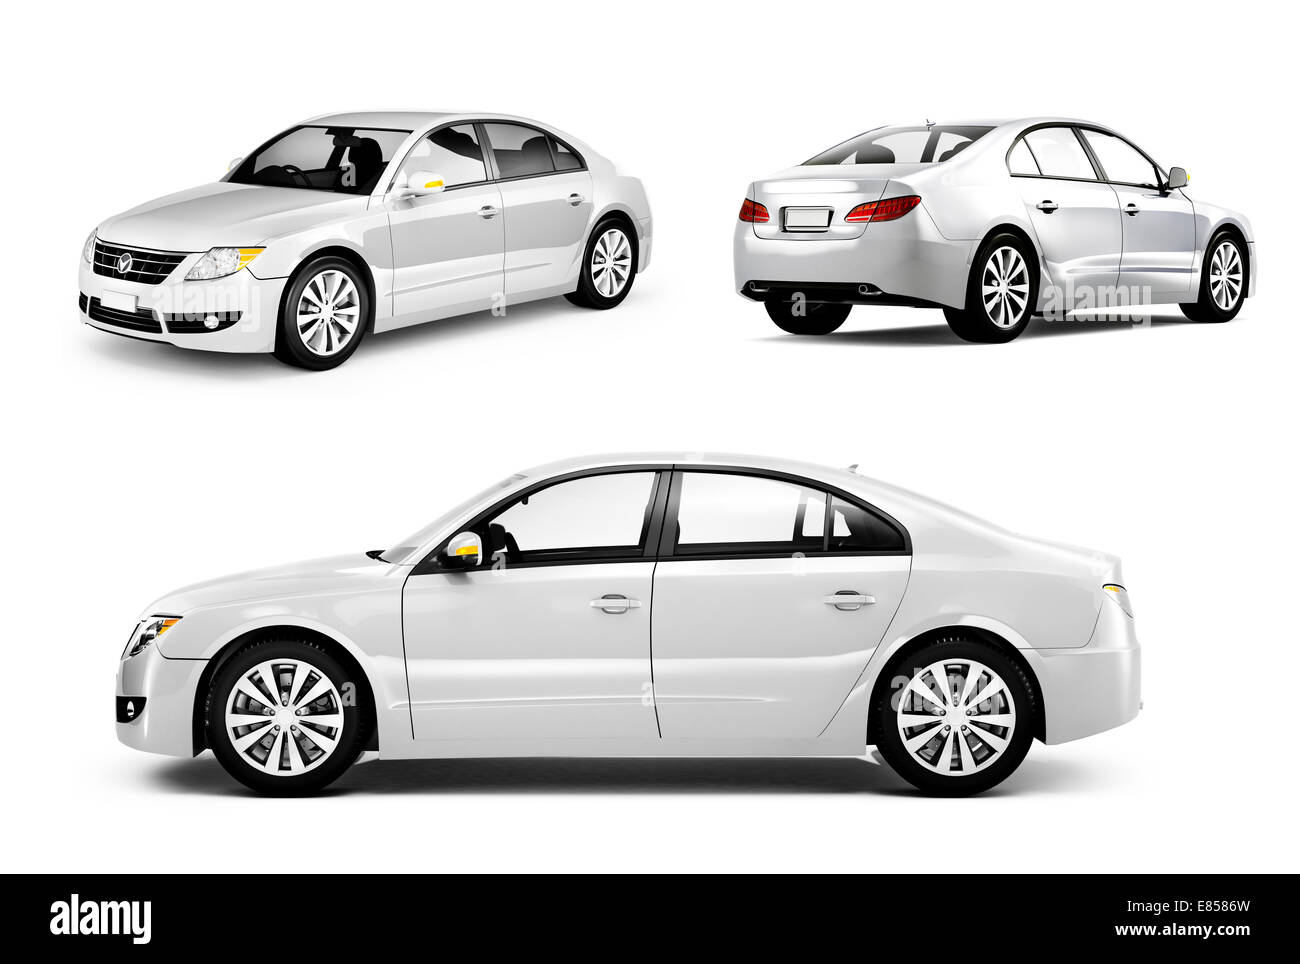 Three Dimensional Image of a White Car - Stock Image